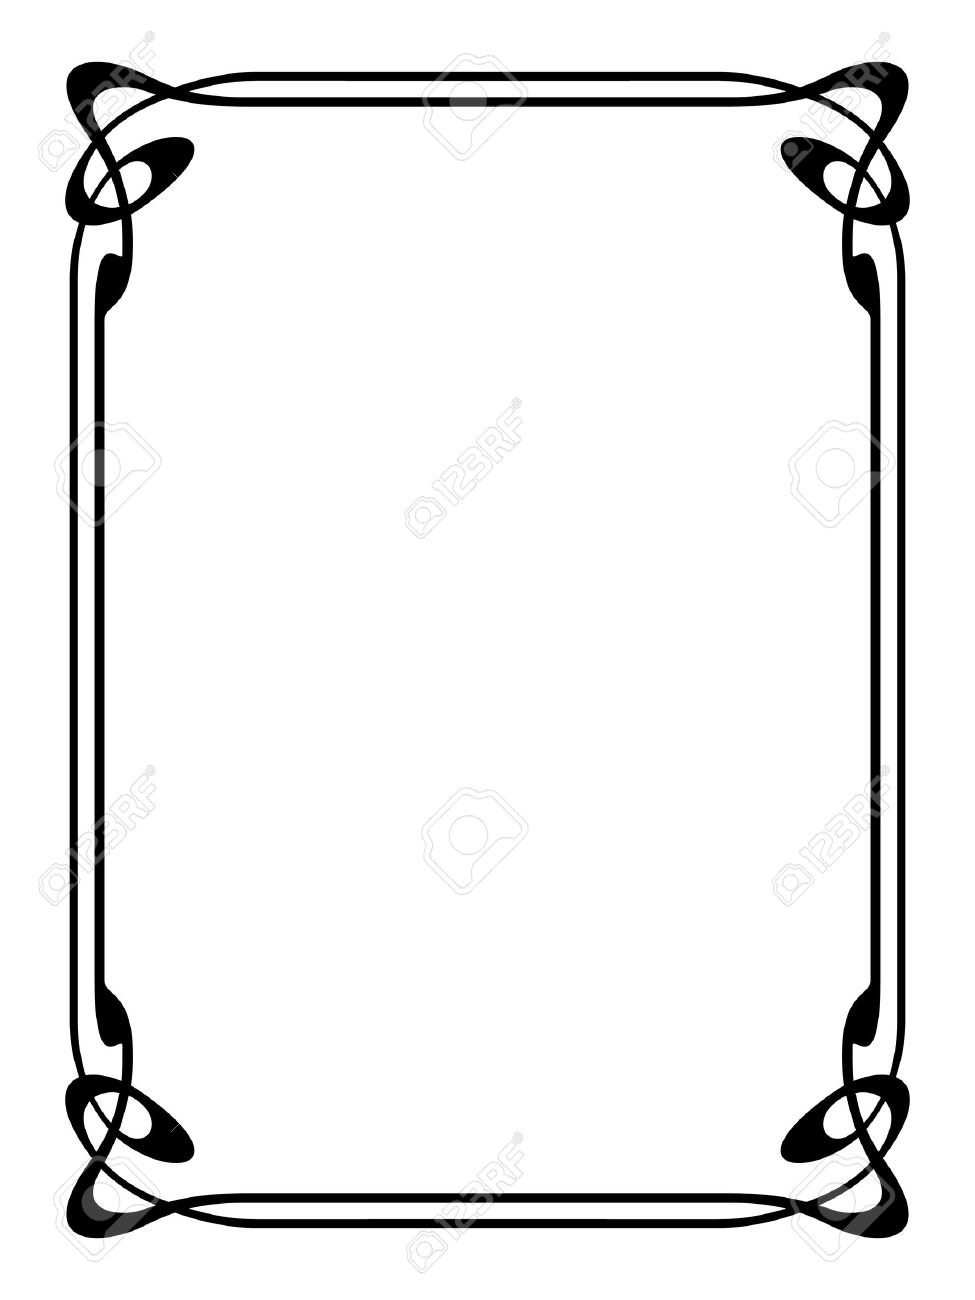 Frame Design Line Art : Scroll border designs free download best